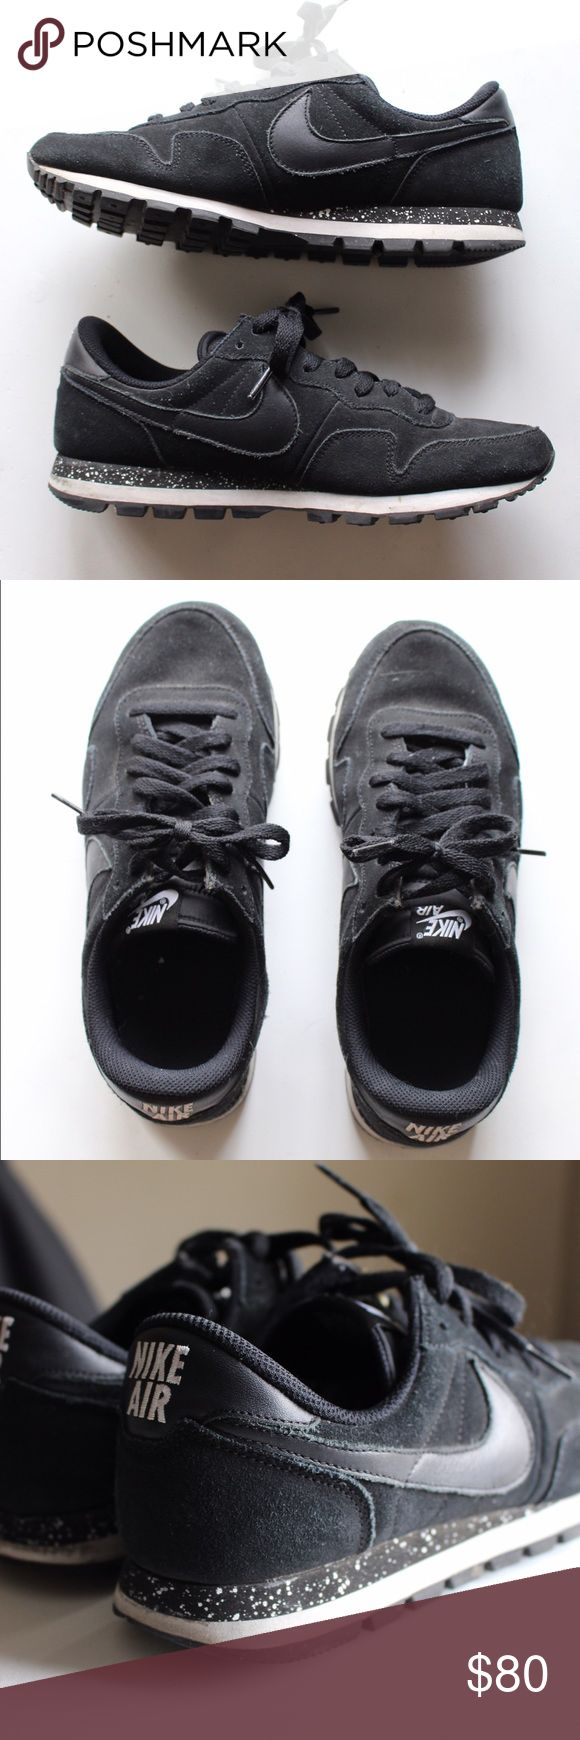 Nike Air Tennis Shoes (NikeID Customized) Size 9 All black Nike Air Tennis Shoes. Suede black material. Like new, worn only a couple times. Size: 9 Nike Shoes Athletic Shoes